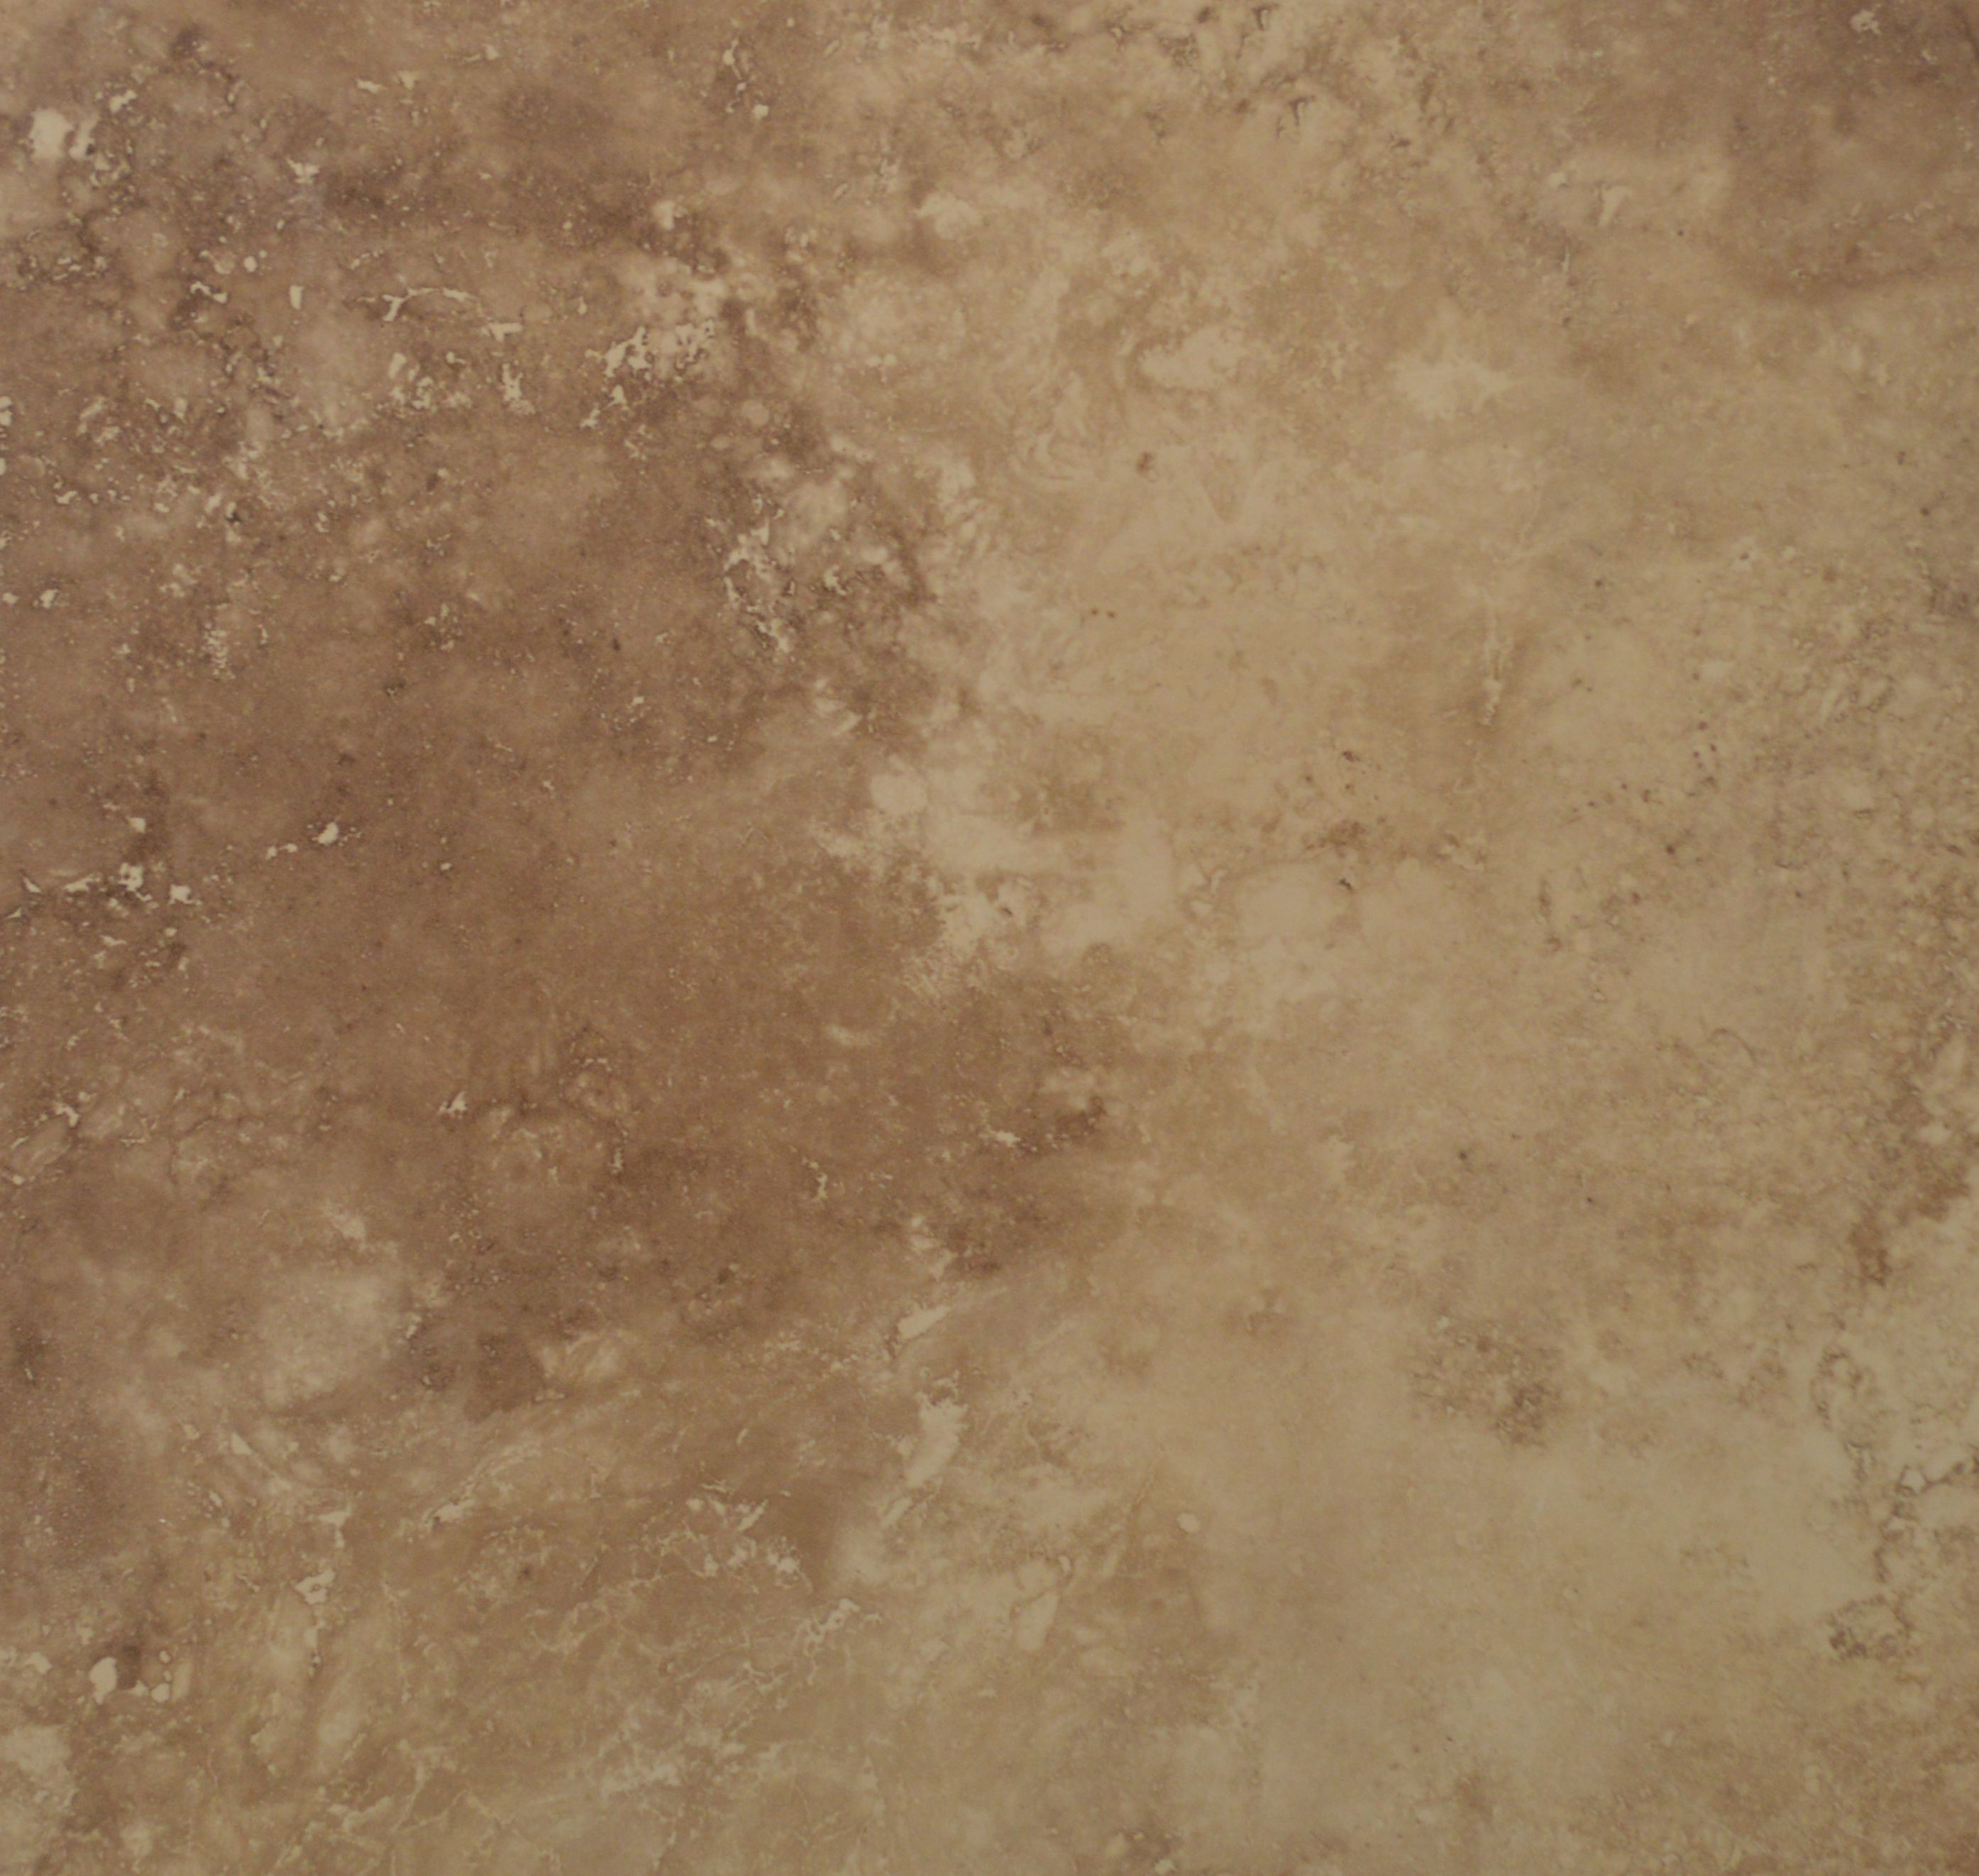 Millstone brown pearl 3x13 or 13x13 or 6x6 level 3 bath tile millstone brown pearl 3x13 or 13x13 or 6x6 level 3 level 3house floortile doublecrazyfo Images